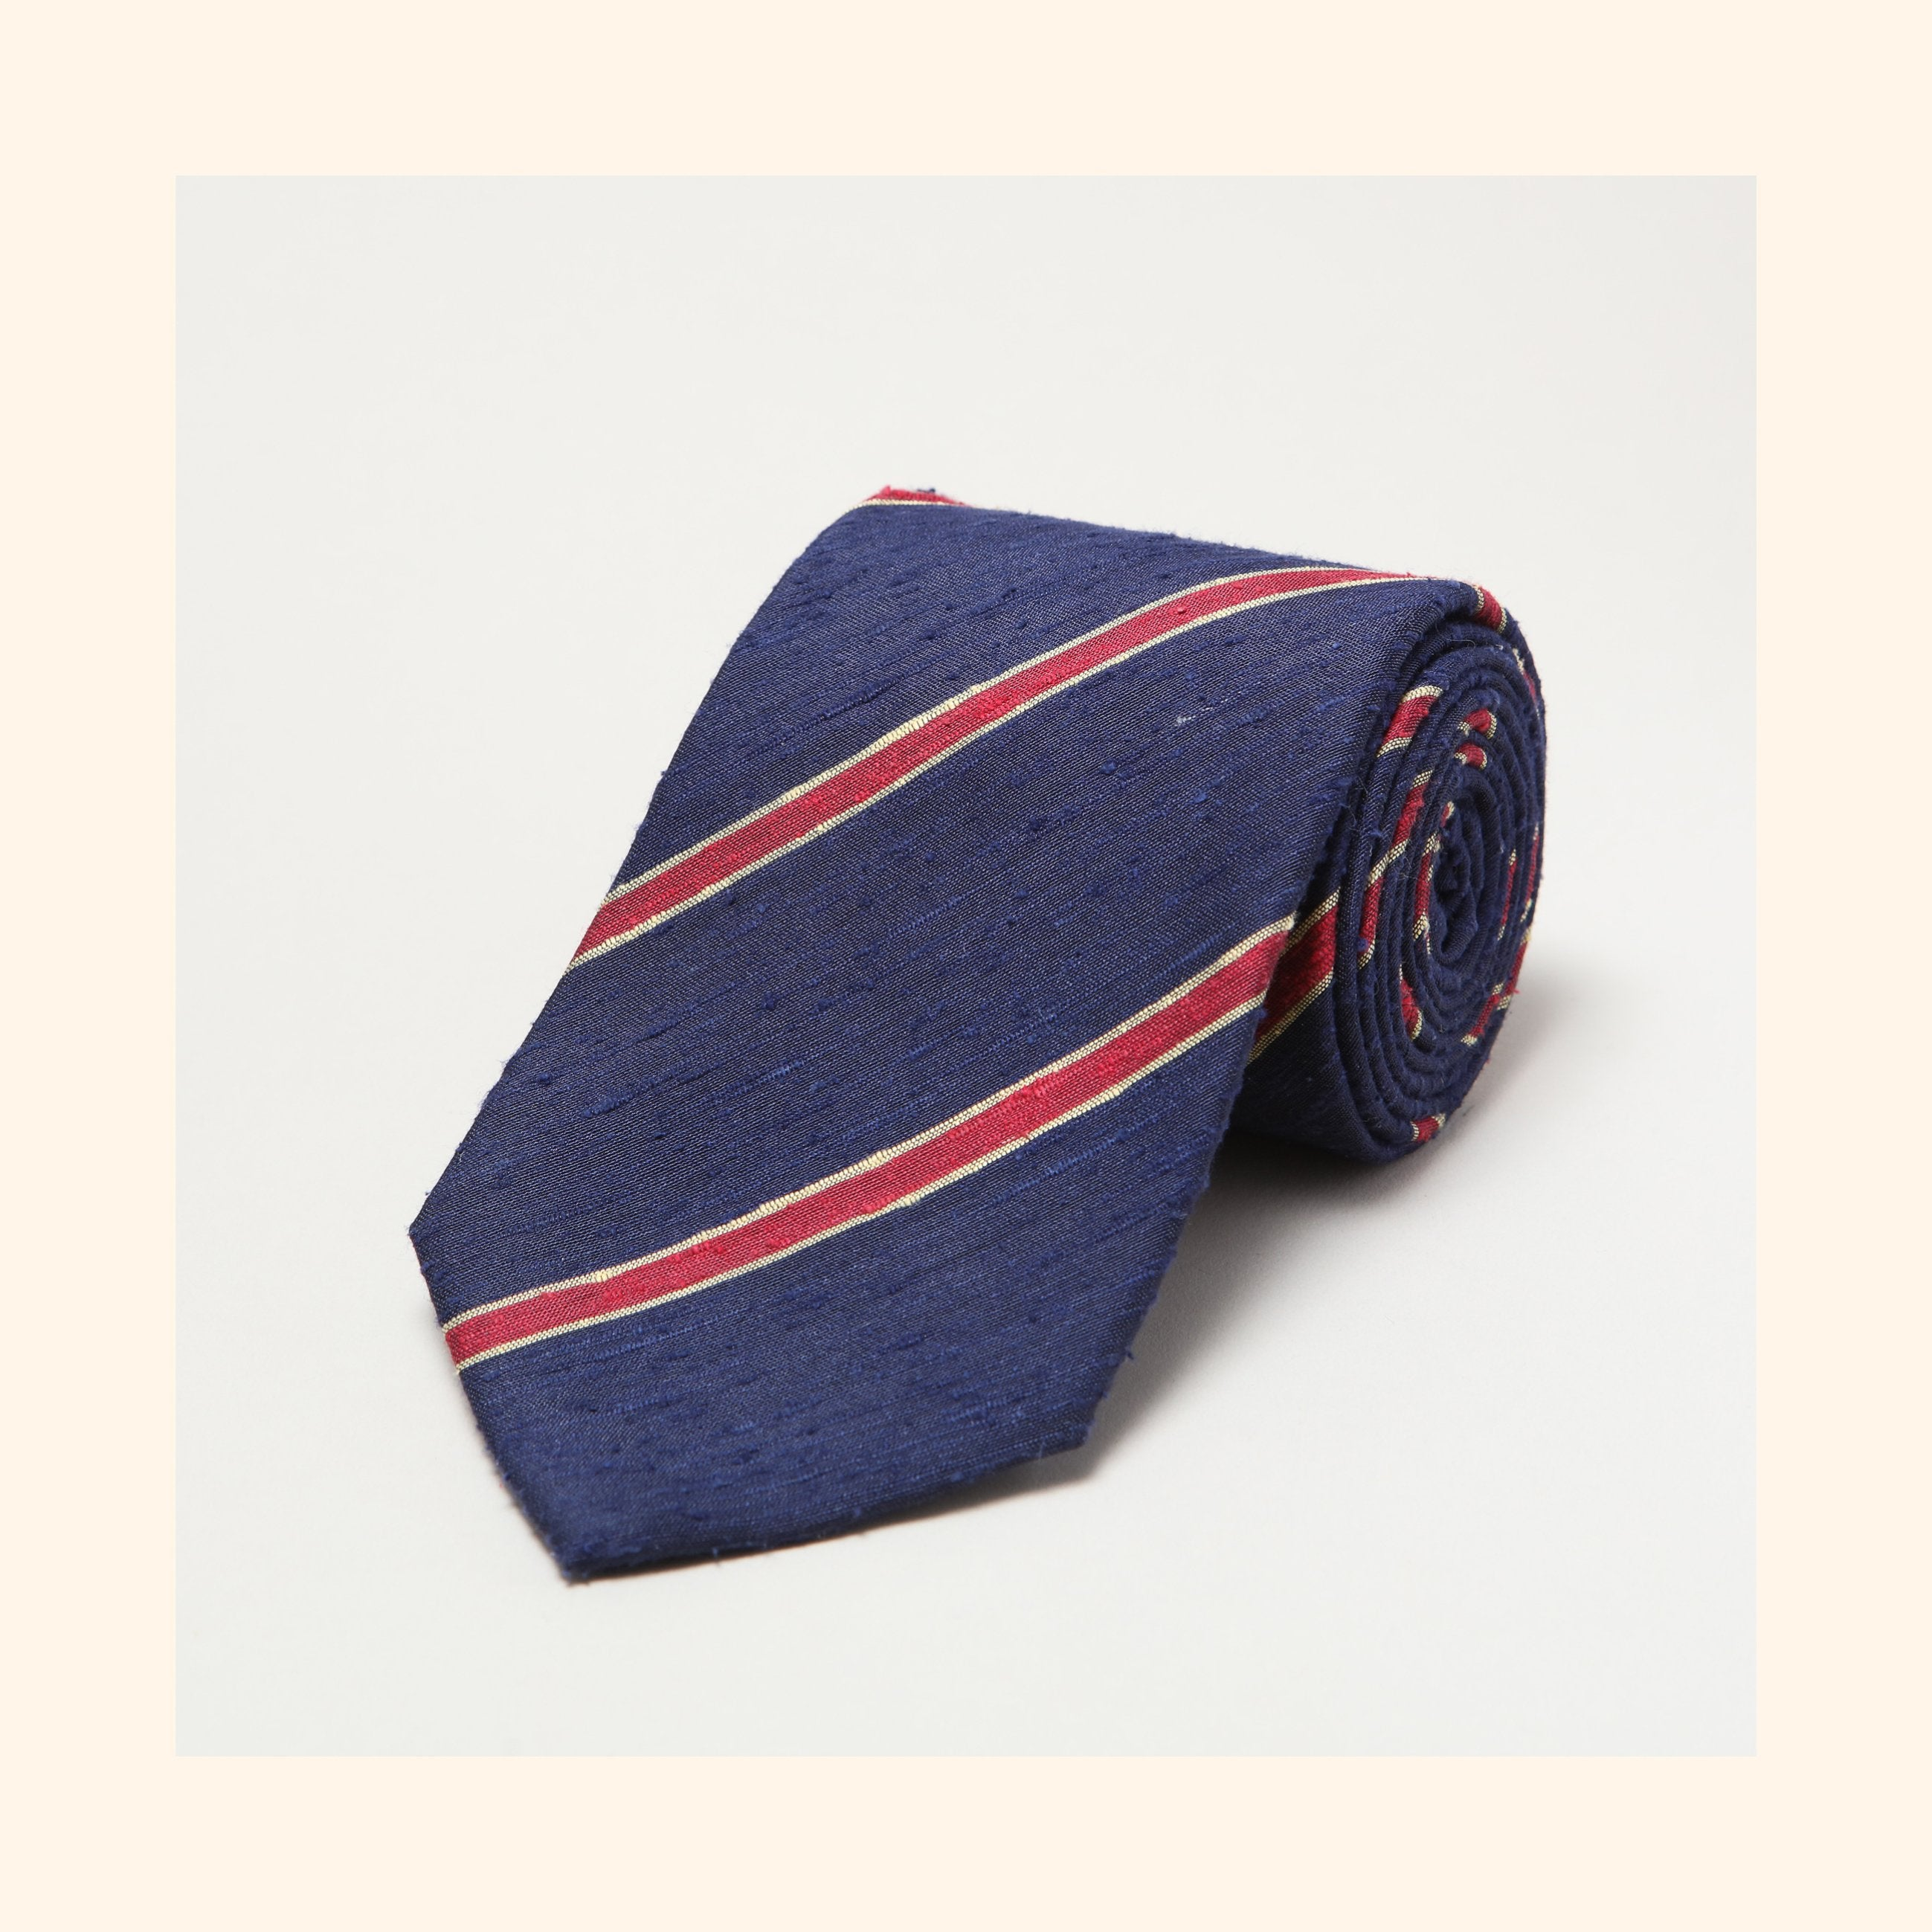 № 060 - Navy/Red Bordered Stripe Shantung Silk Tie